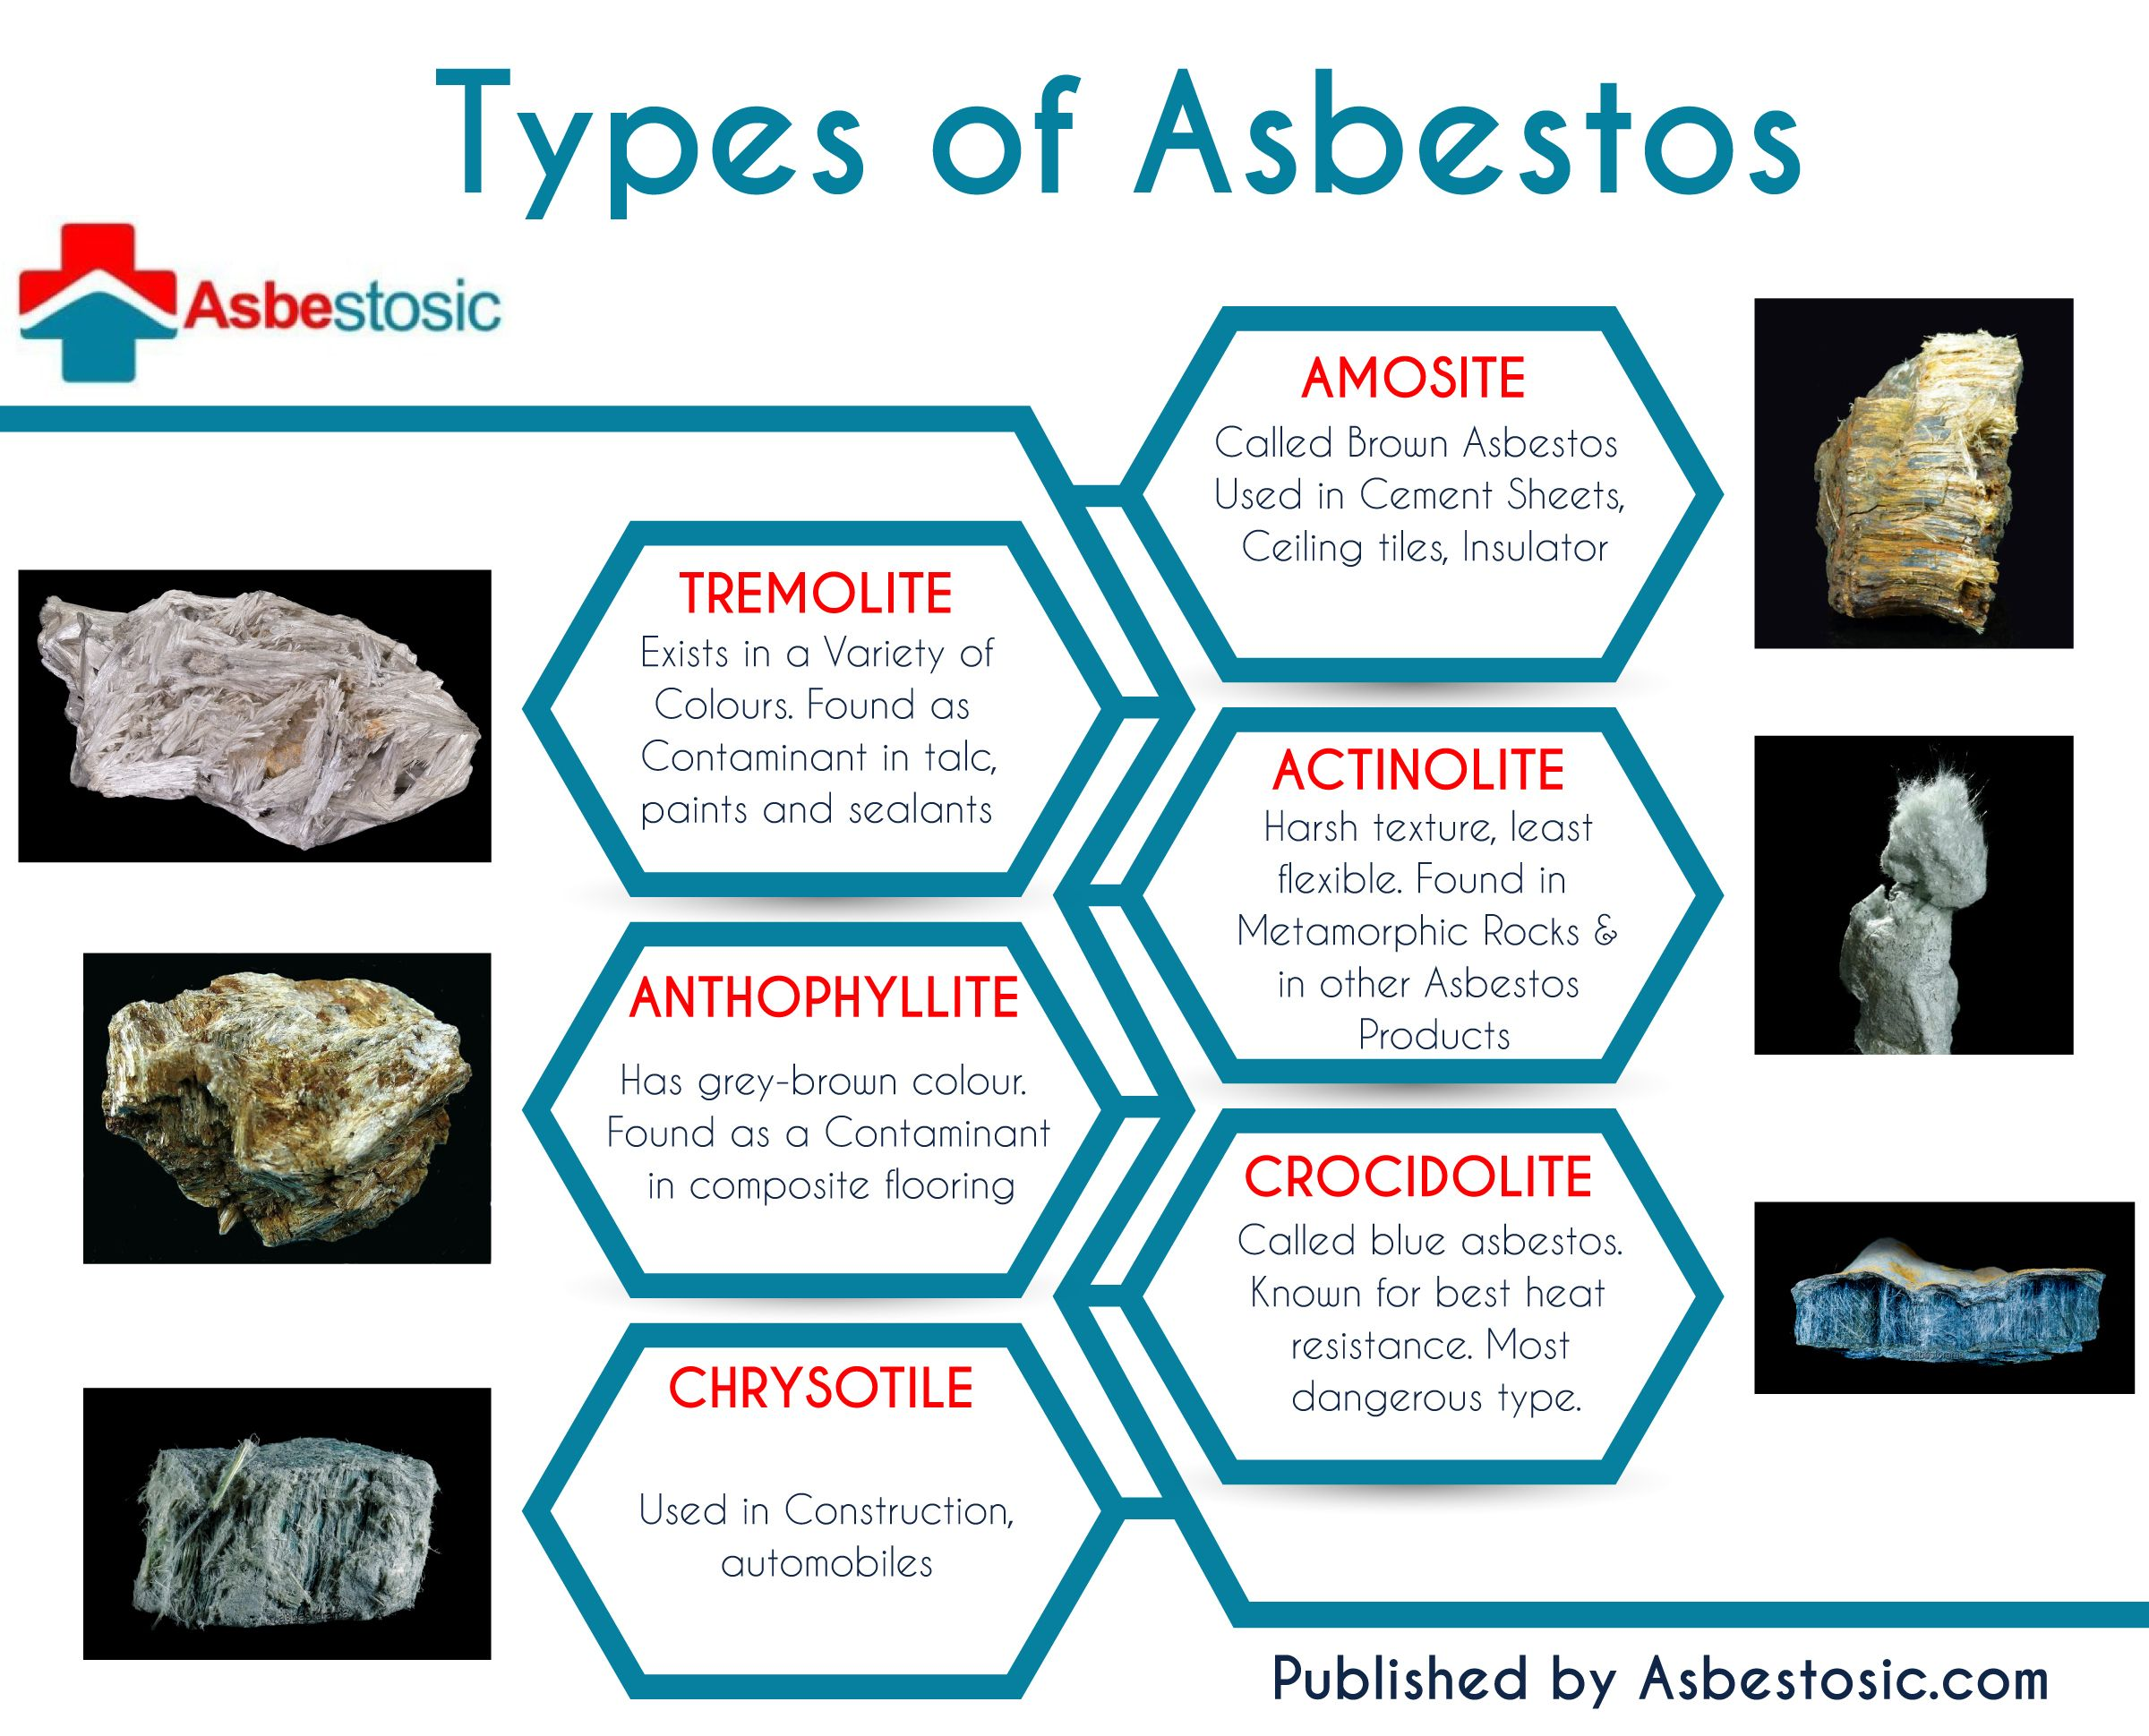 Types of asbestos. More at http://www.asbestosic.com/typesofasbestos/  Asbestos Awareness